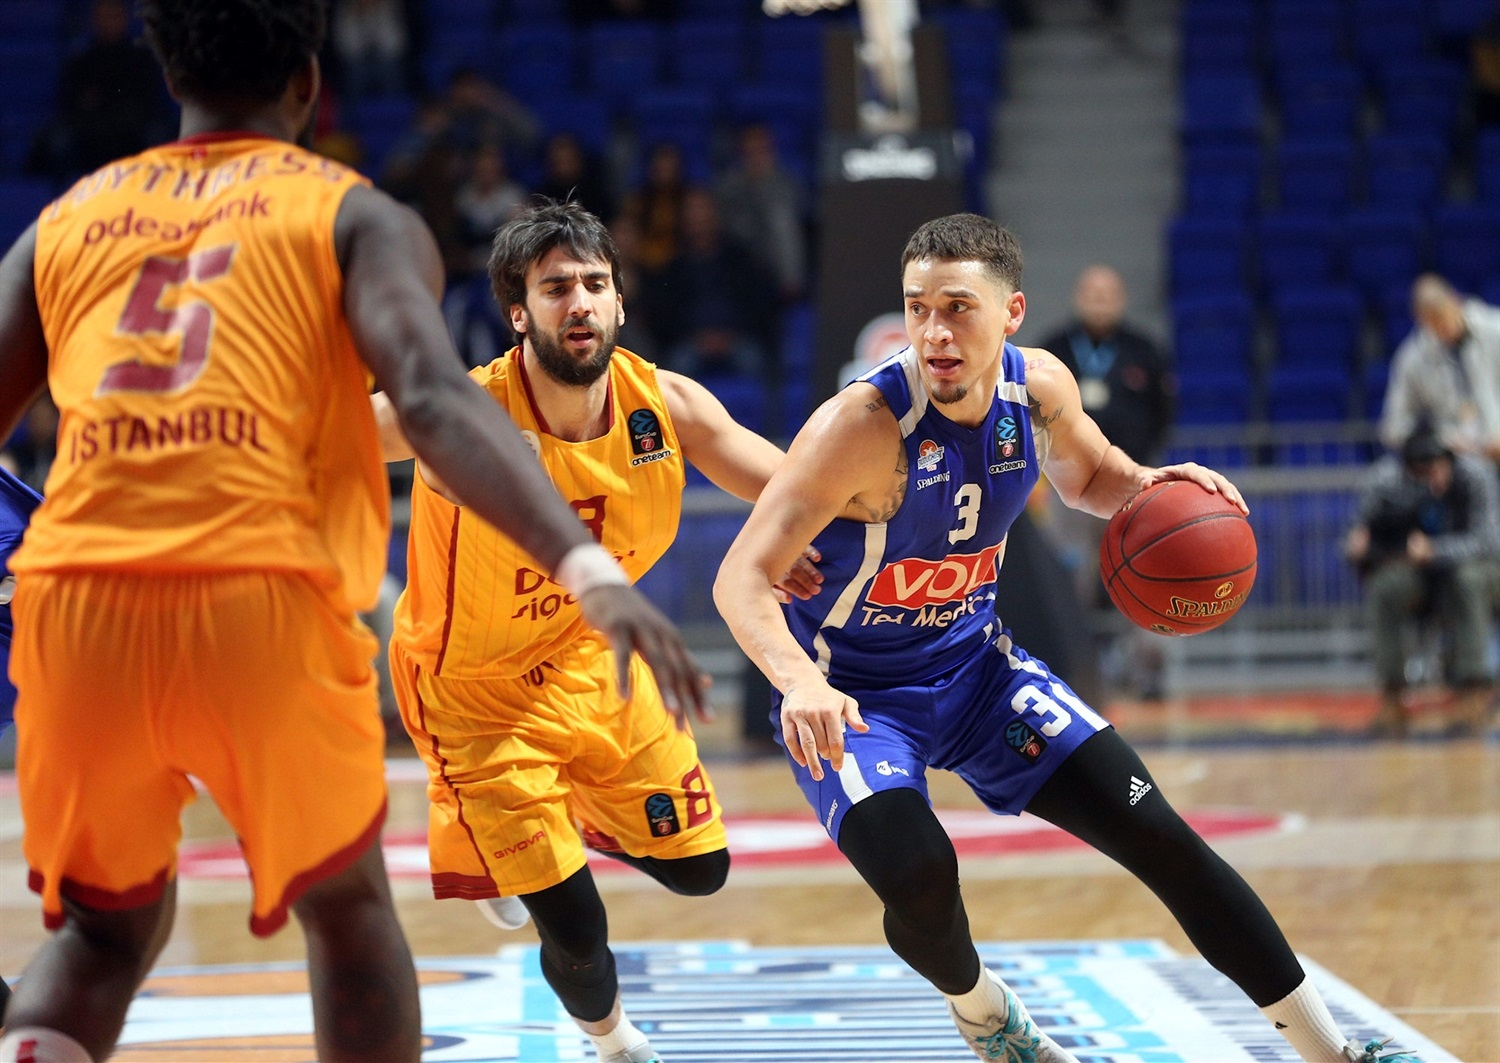 Scott Bamforth - Buducnost VOLI Podgorica (photo Buducnost) - EC19